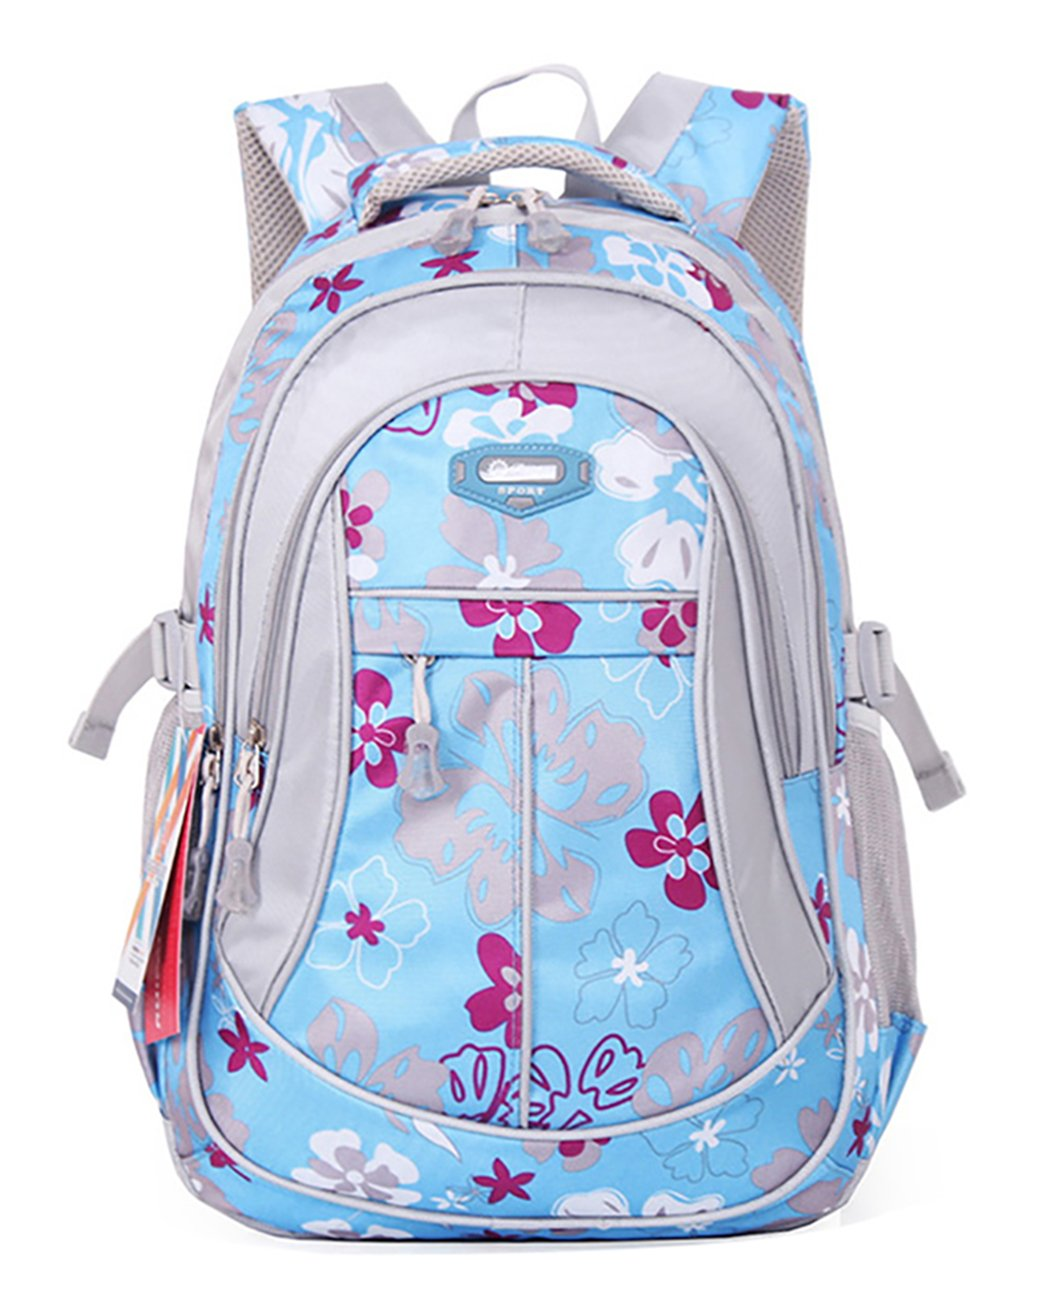 [JiaYou]JiaYou Kid Child Flower Printed Backpack School Bag USXB101A2 [並行輸入品] B013LO7Y9Q Blue Small